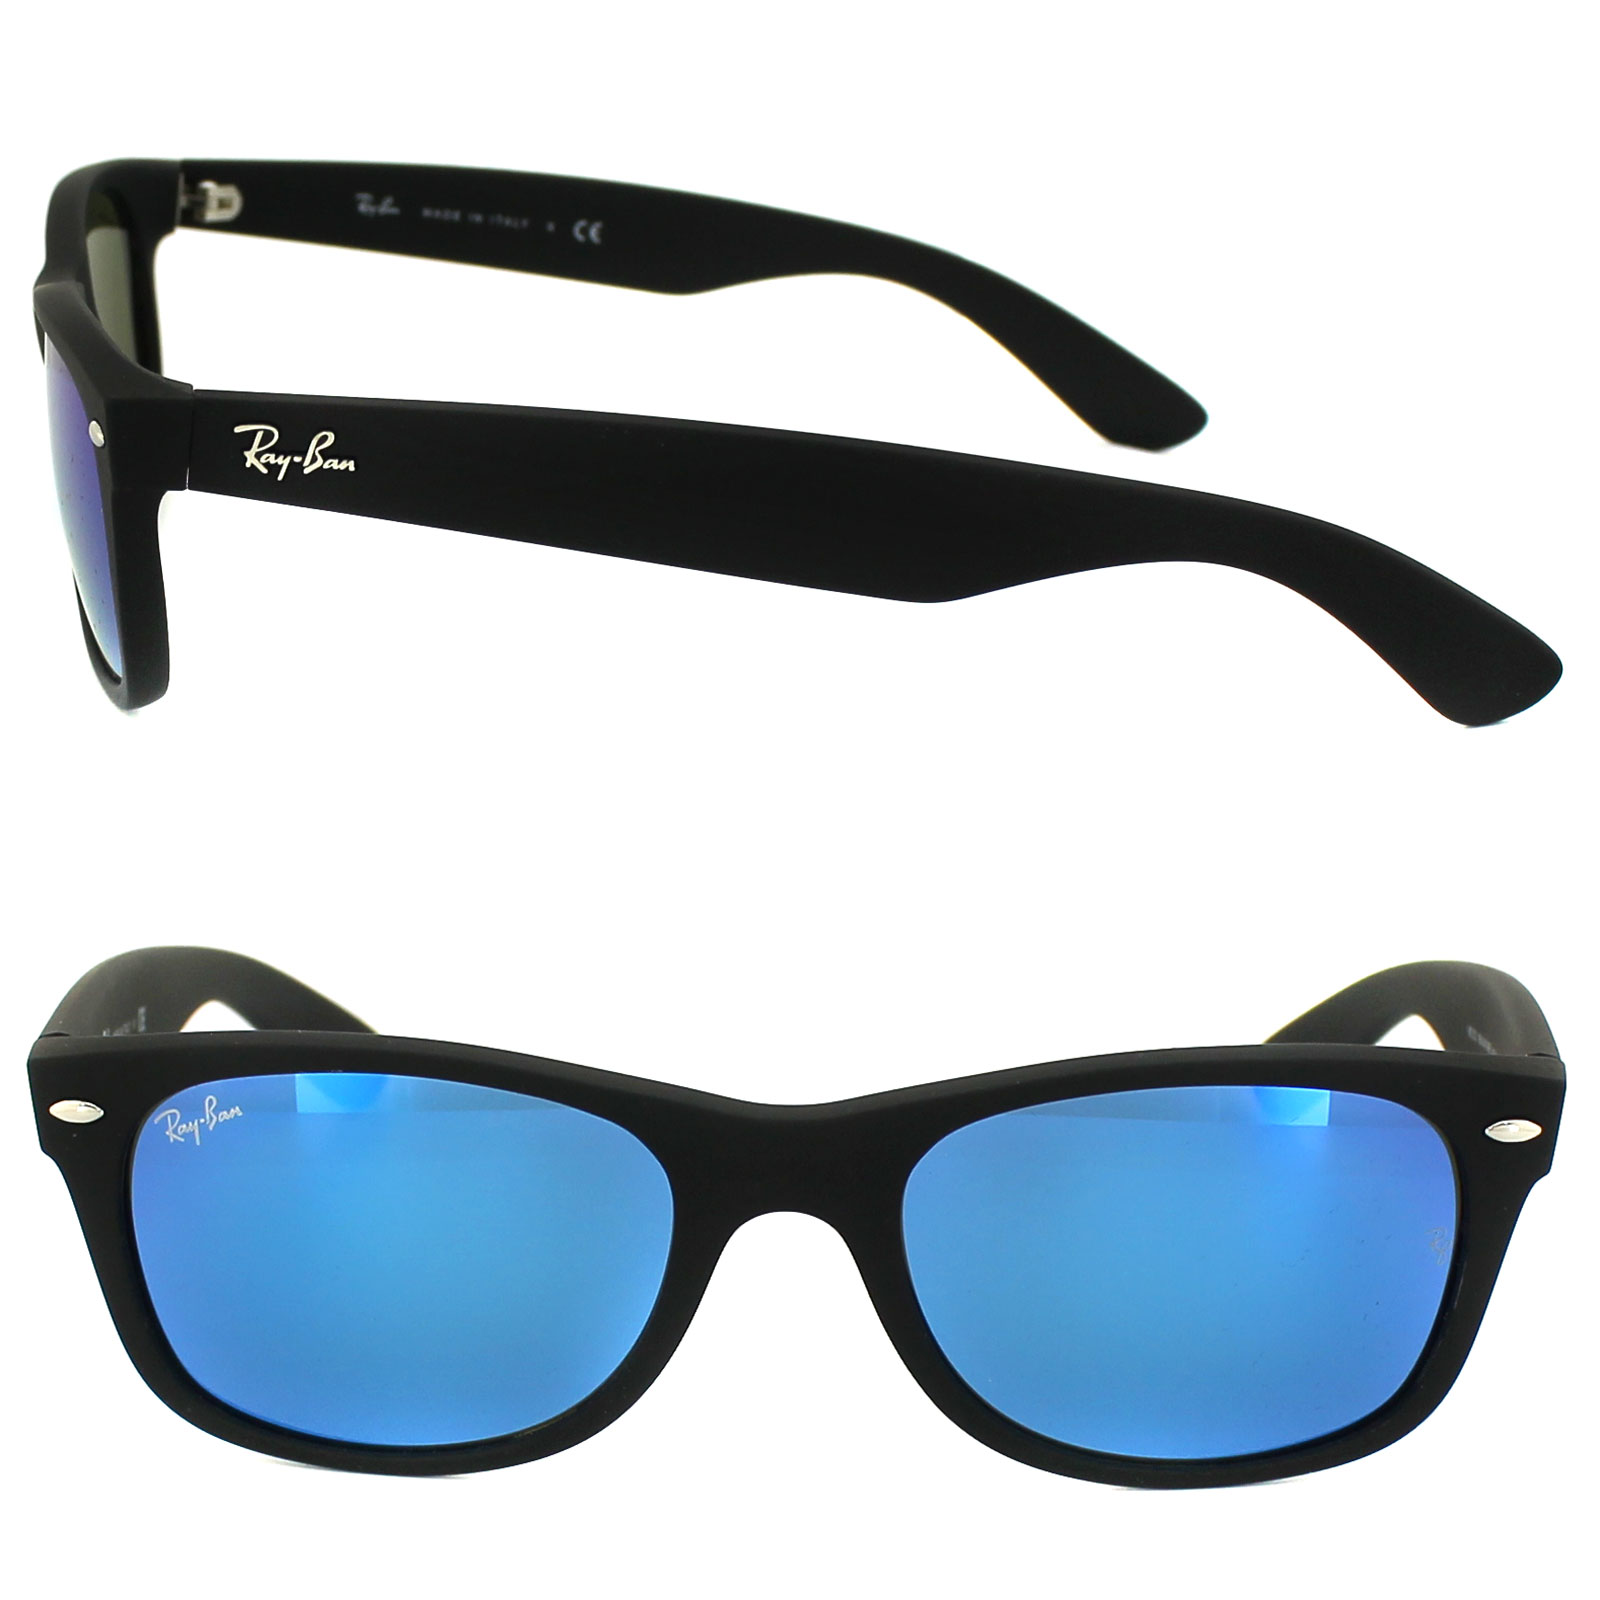 Ray Ban New Wayfarer RB 2132 622/17 xYkwuTobV0